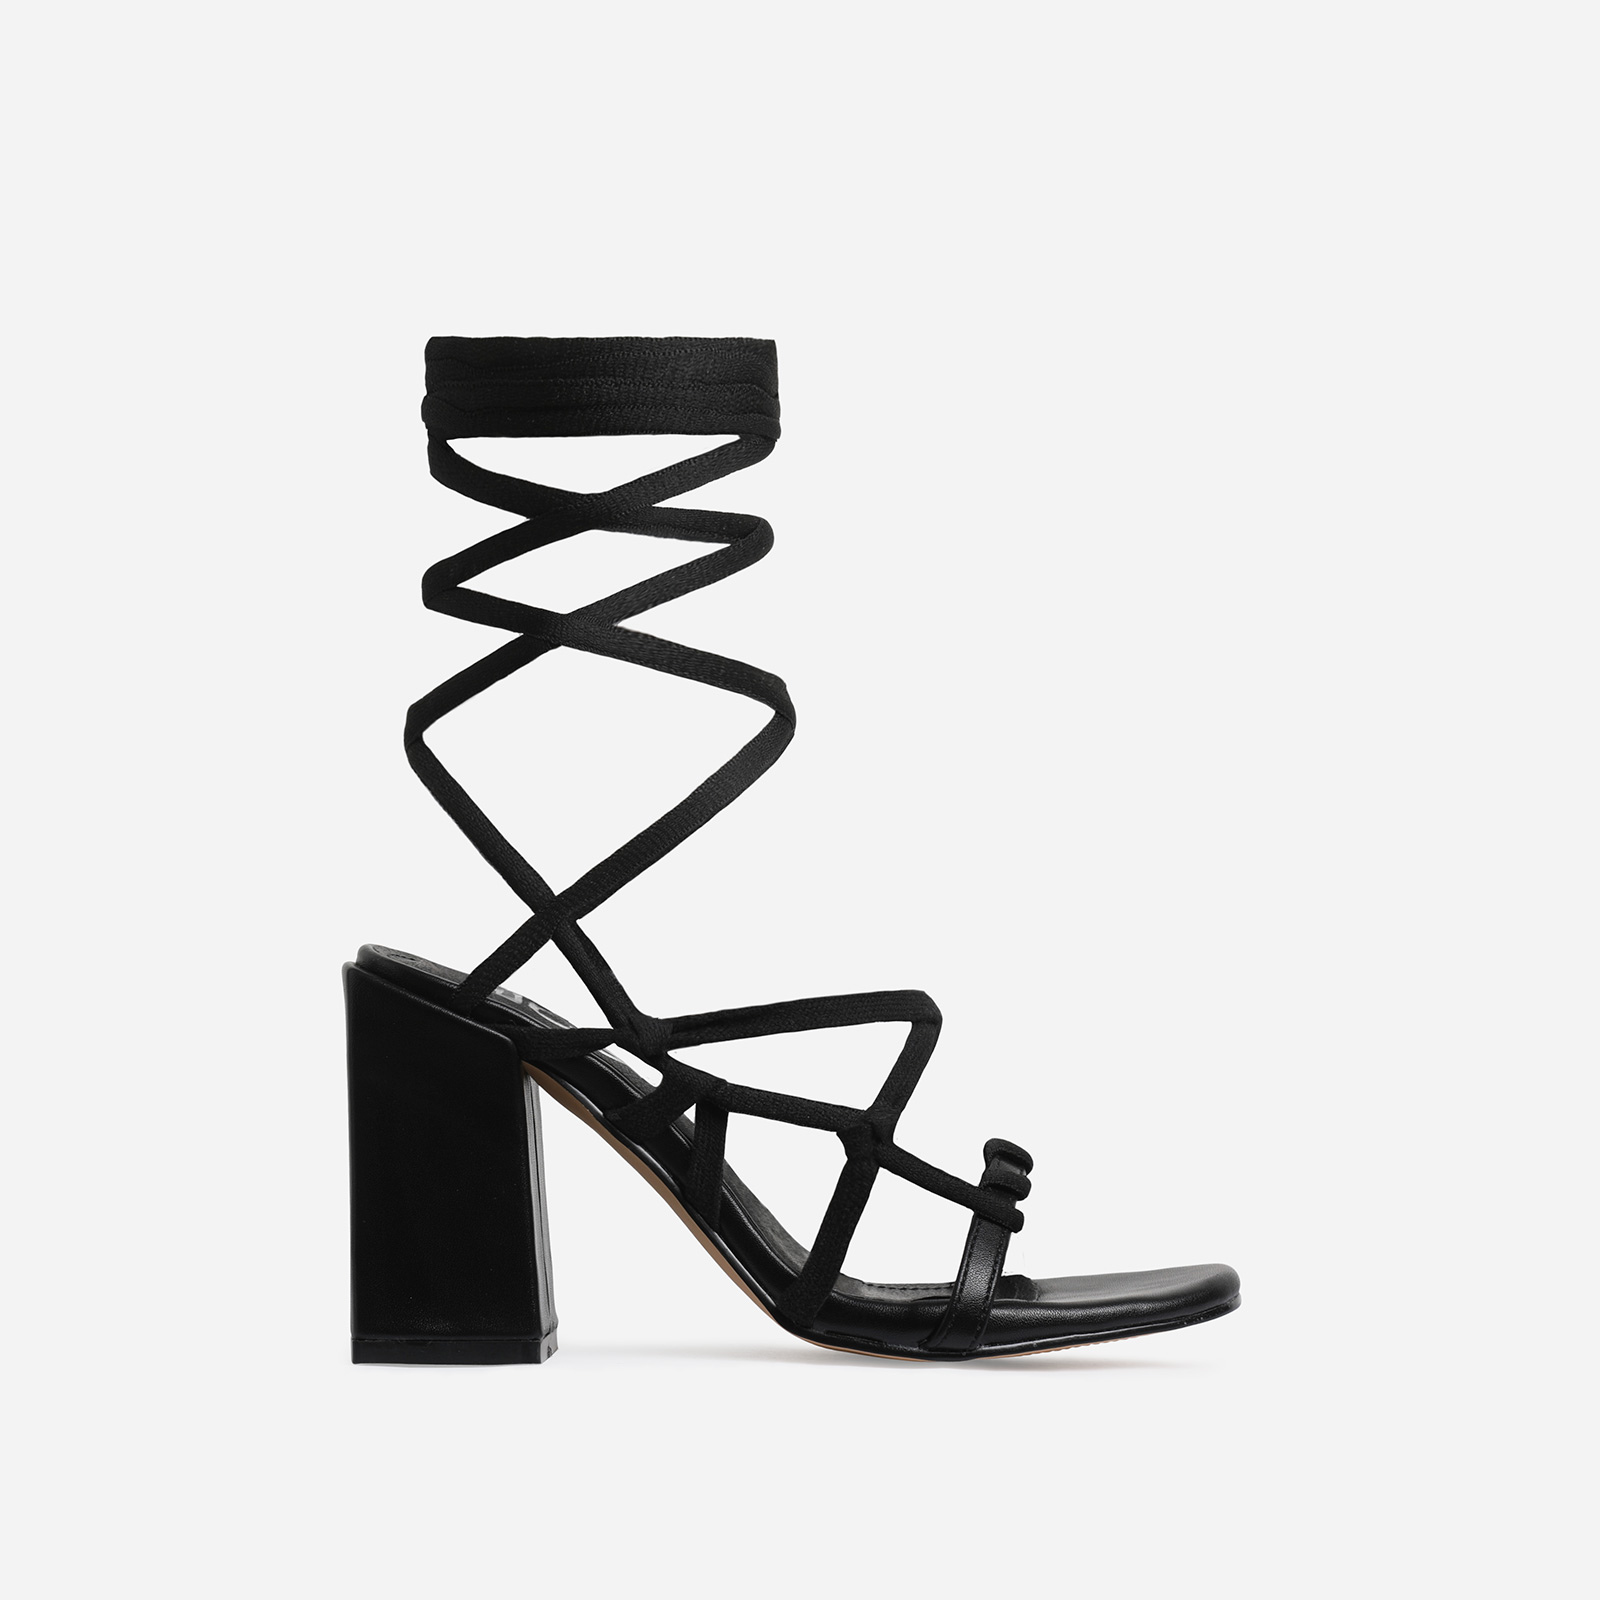 Erzi Square Toe Lace Up Block Heel In Black Faux Leather